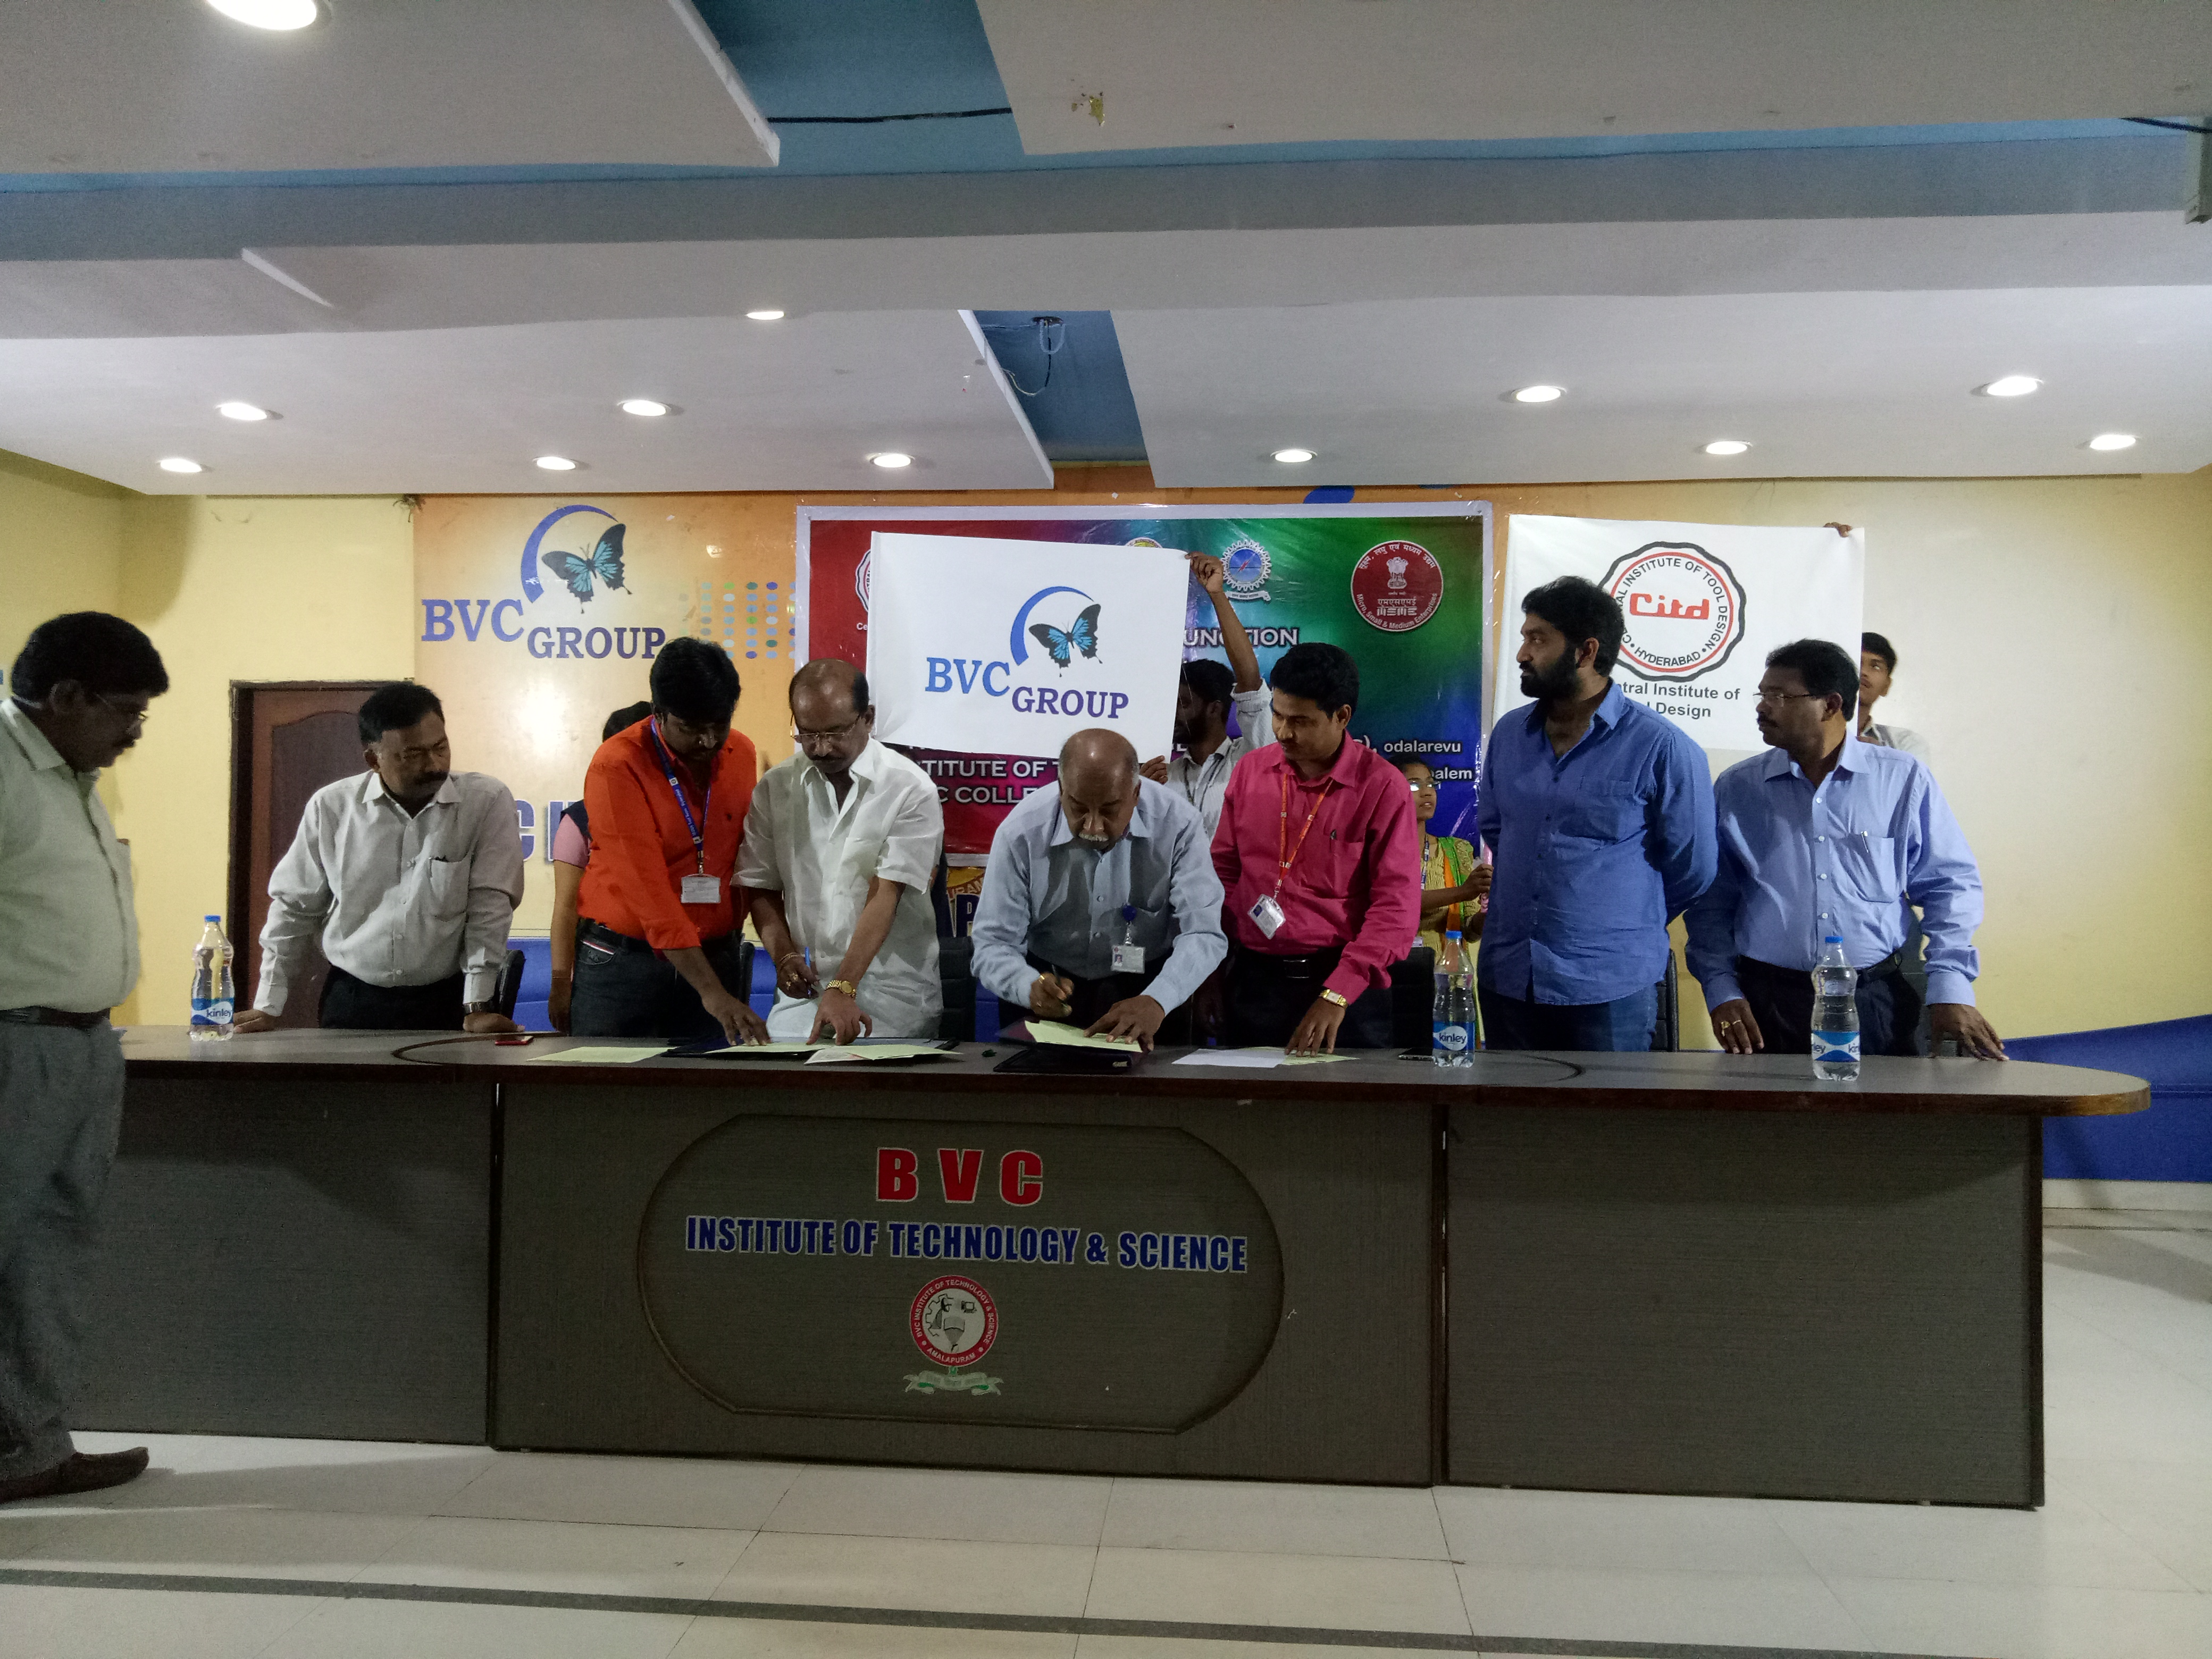 Another Milestone of BVC- MoU with Central Govt organisation MSME TOOL ROOM(CITD) on 6th March 2020, to provide internships and placement opportunities to the BVC Group of students.